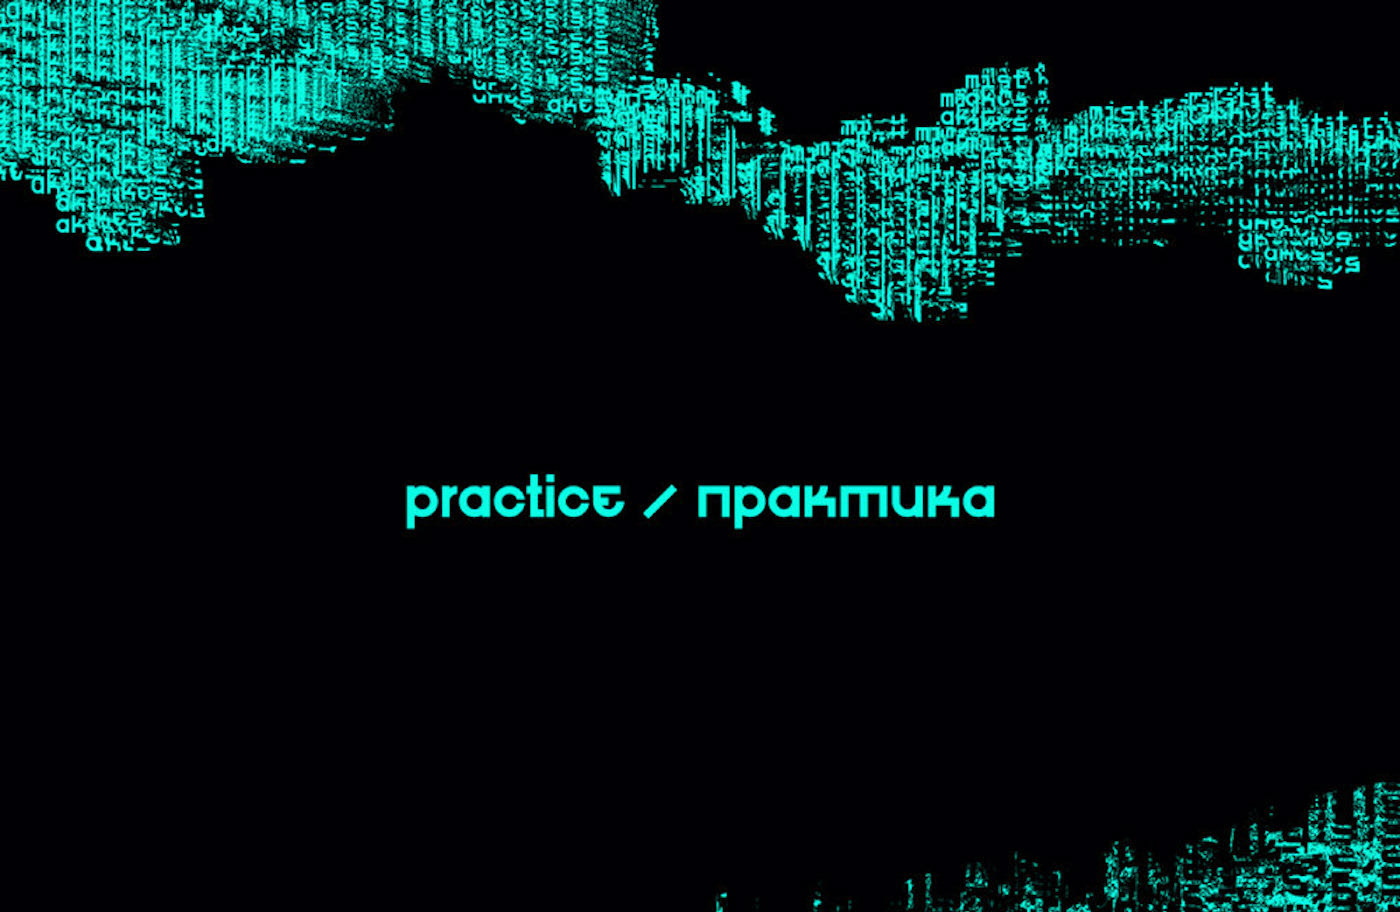 PRACTICE Free Font - decorative-display, cyrillic